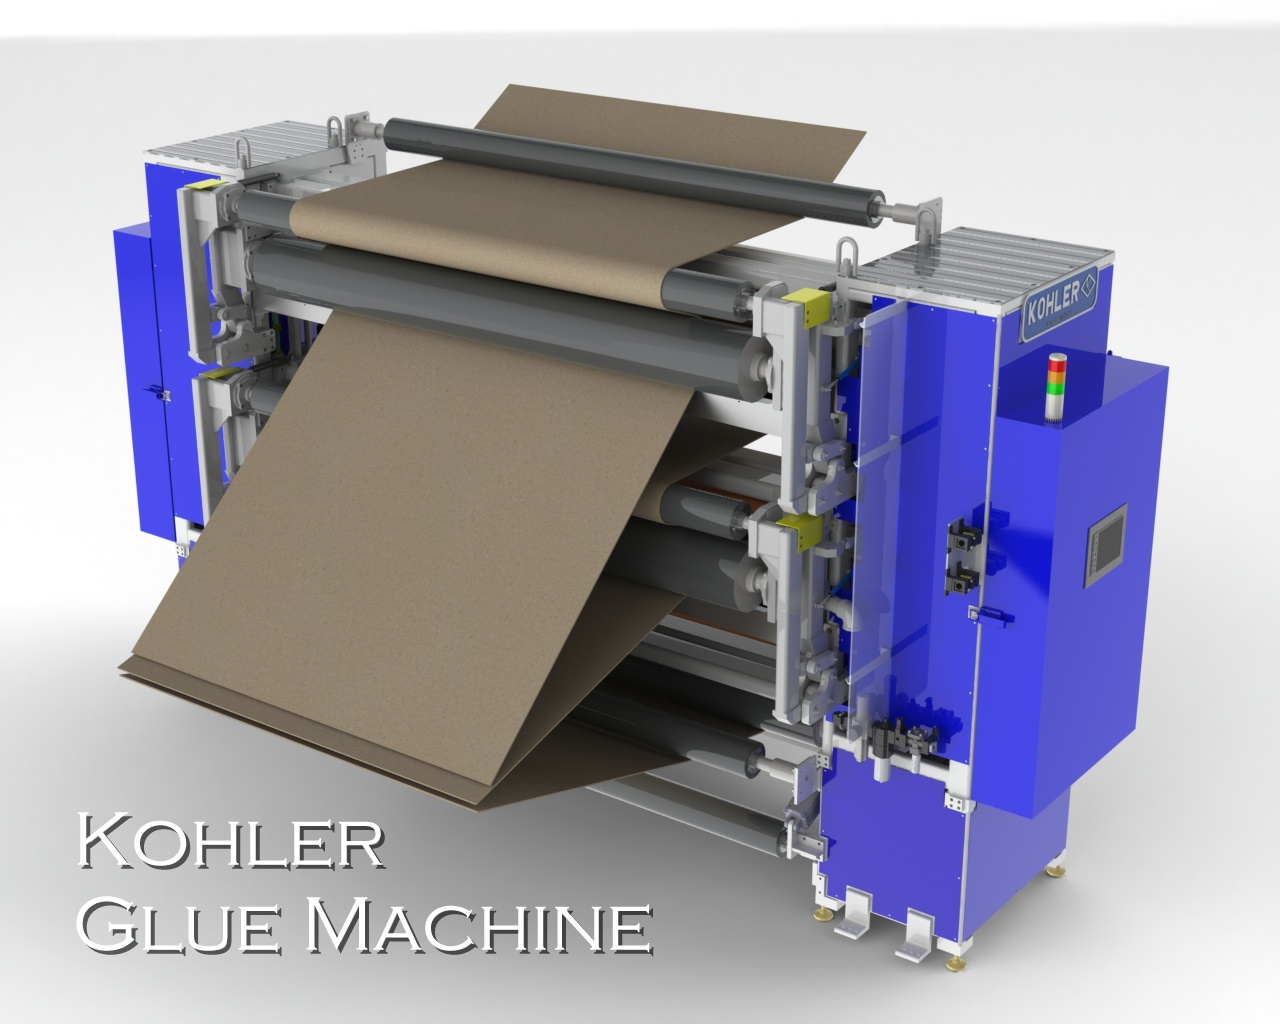 Kohler Coating Glue Machine